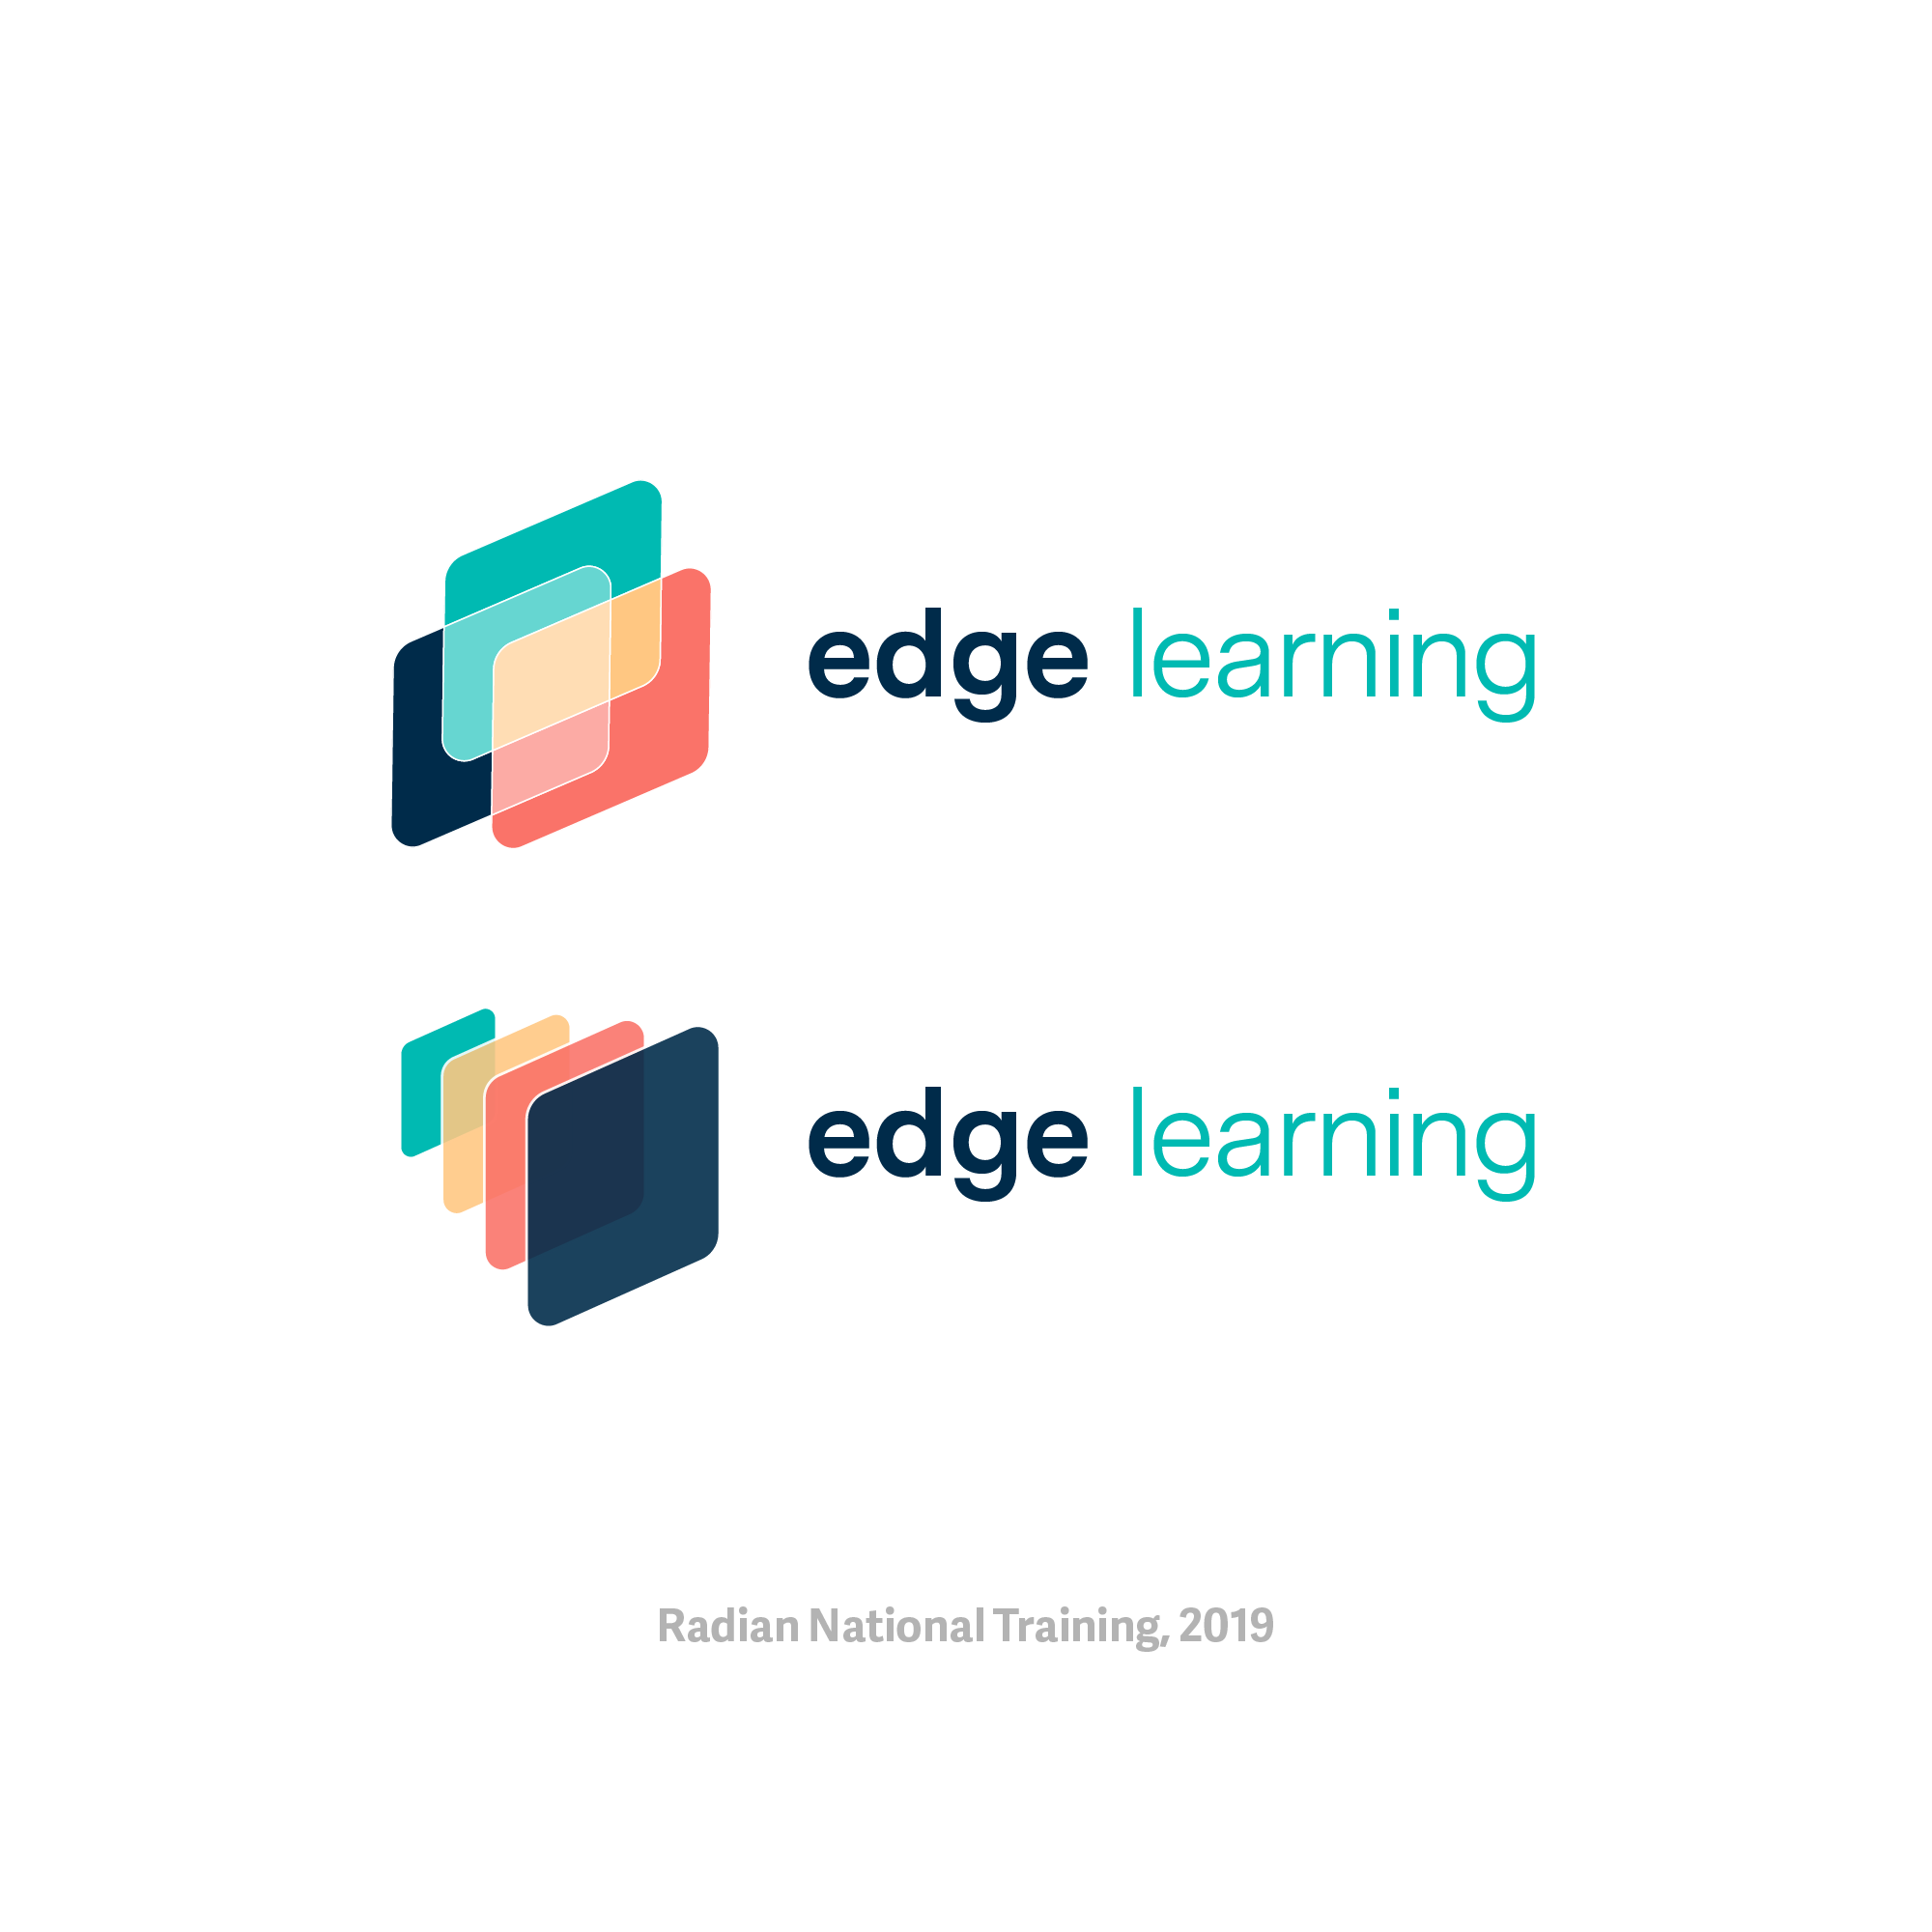 Concepts for edge learning, a new learning platform. The rhomboid is a Radian brand motif.